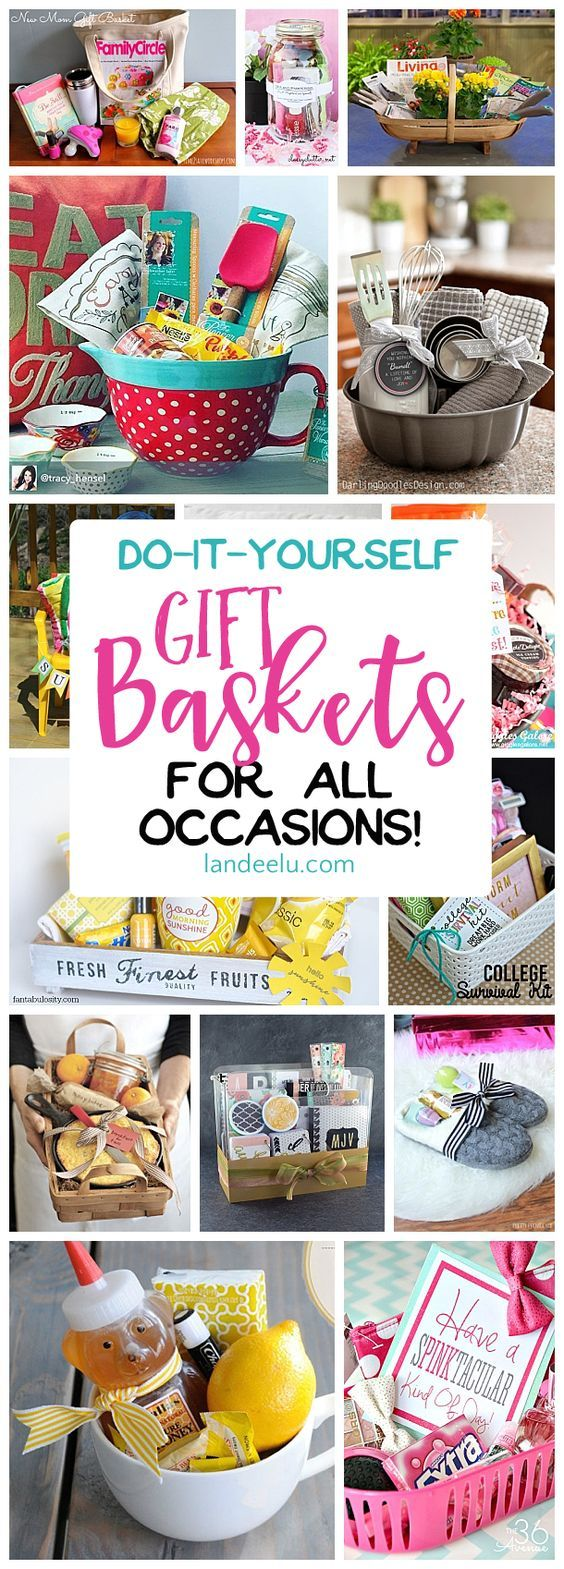 Do it yourself gift basket ideas for all occasions regalitos put together a gift basket for any occasion and make someones day easy do it yourself ideas solutioingenieria Images